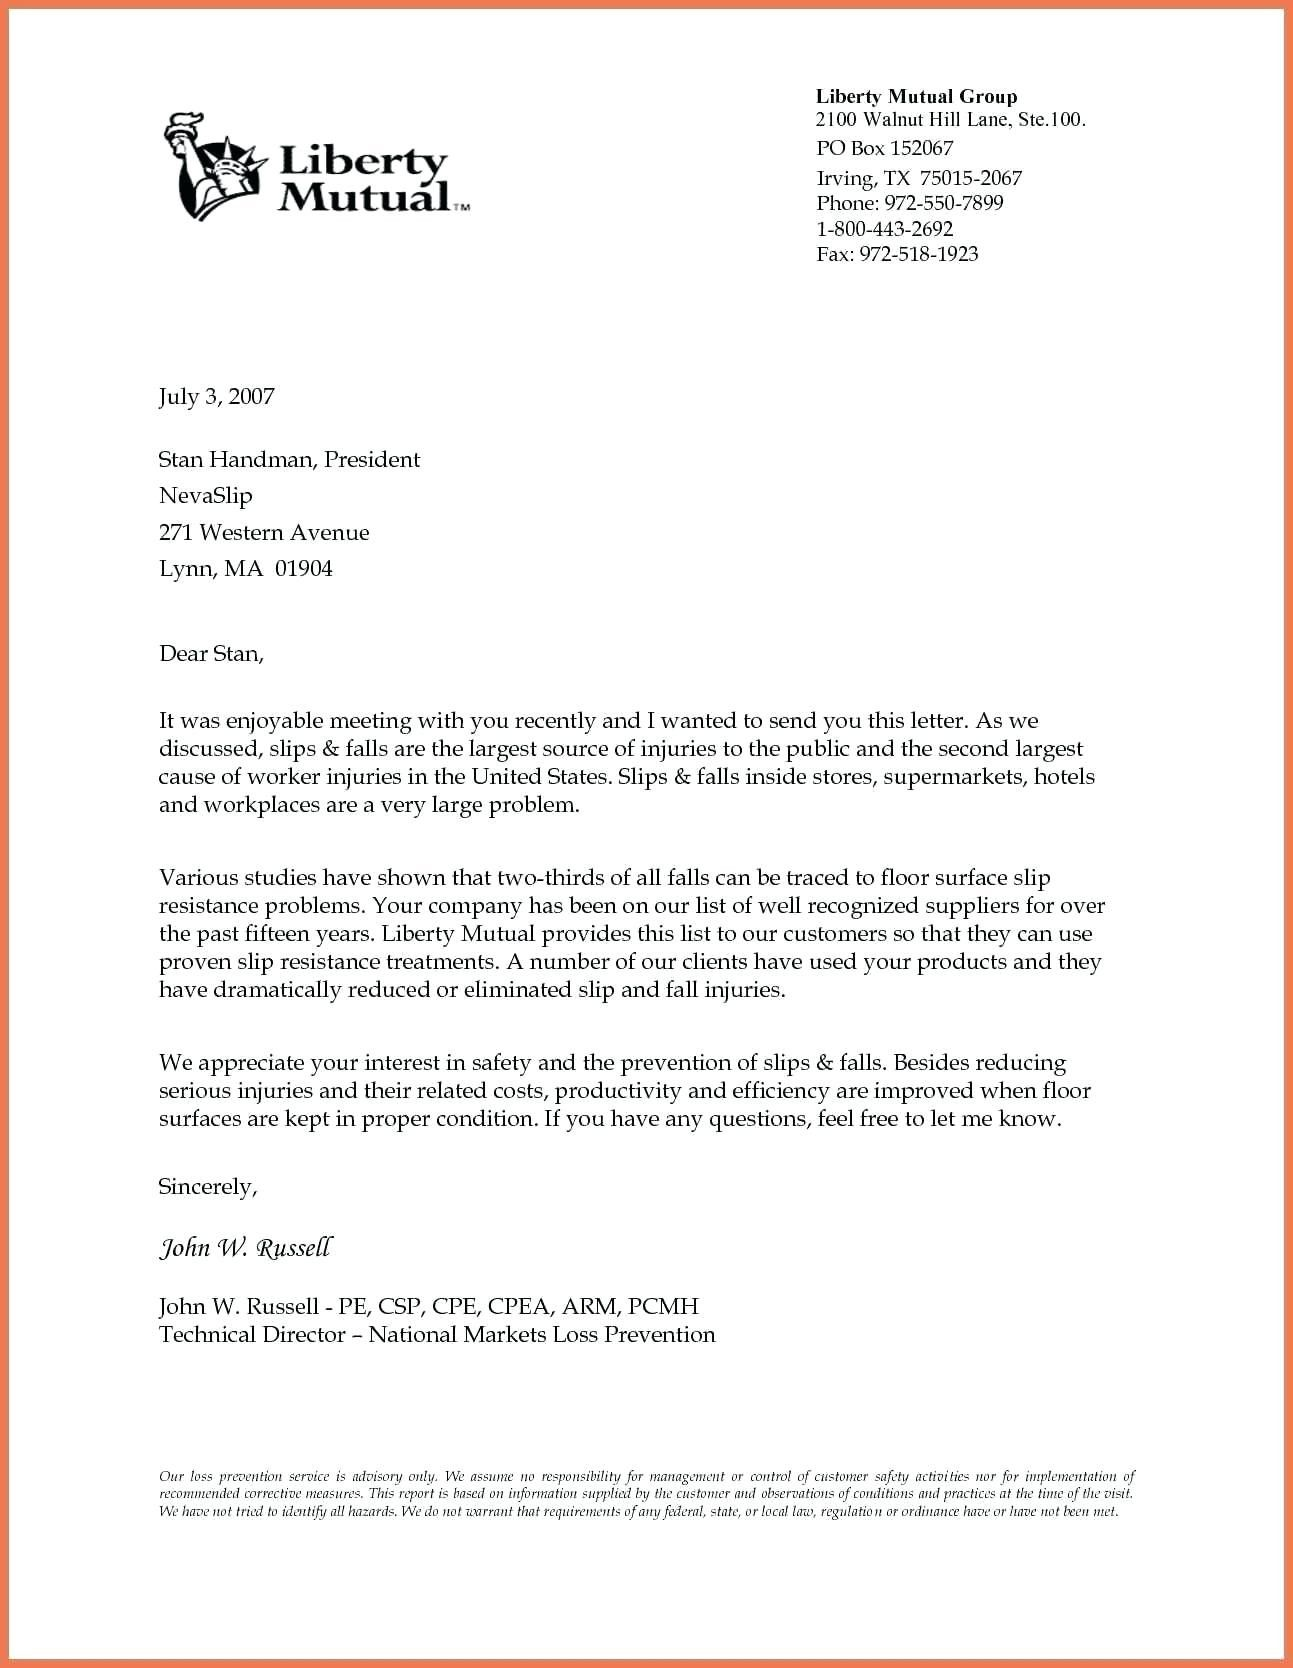 Formal Business Letter Templates 35 Formal Business Letter